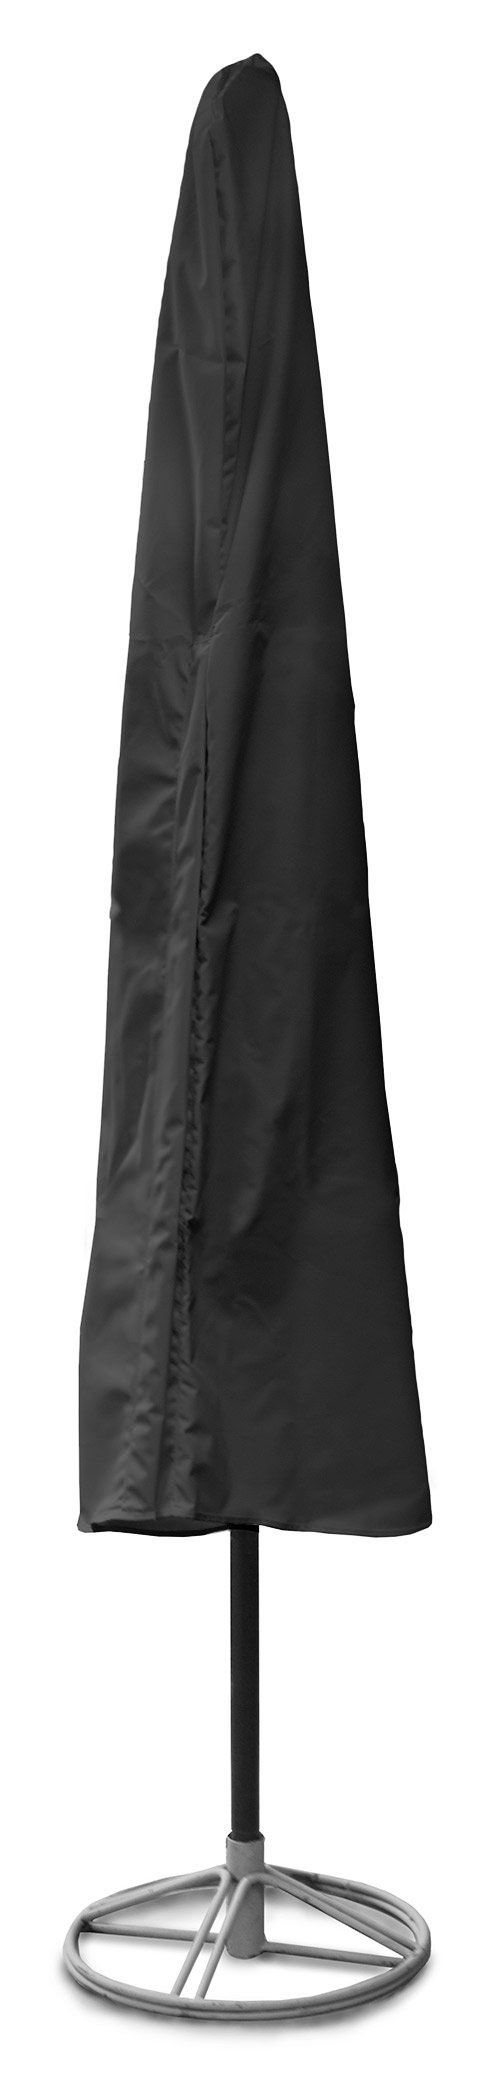 KoverRoos Weathermax 74150 7-Feet to 9-Feet Umbrella Cover, 76-Inch Height by 48-Inch Circumference, Black by KOVERROOS